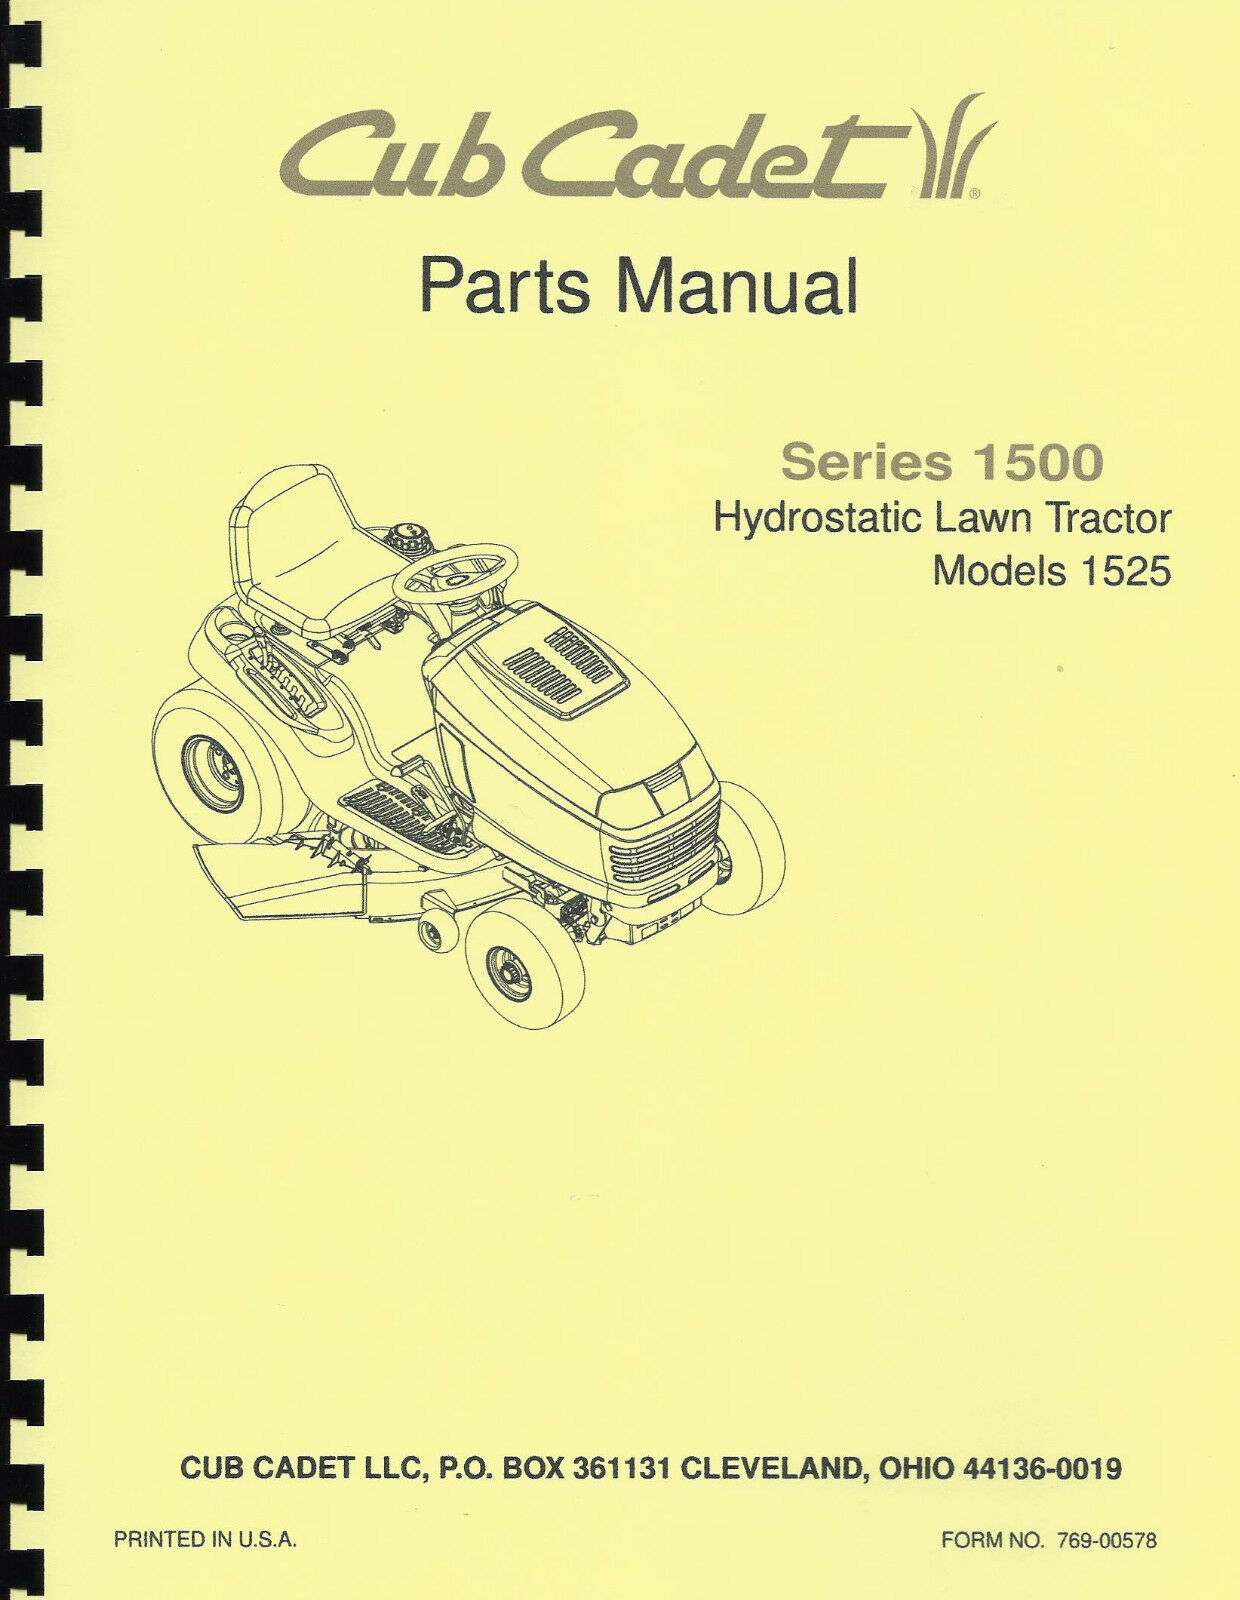 Cub Cadet 1525 Parts Manual Hydrostatic Lawn Tractor Series 1500 1 of 1Only  1 available ...